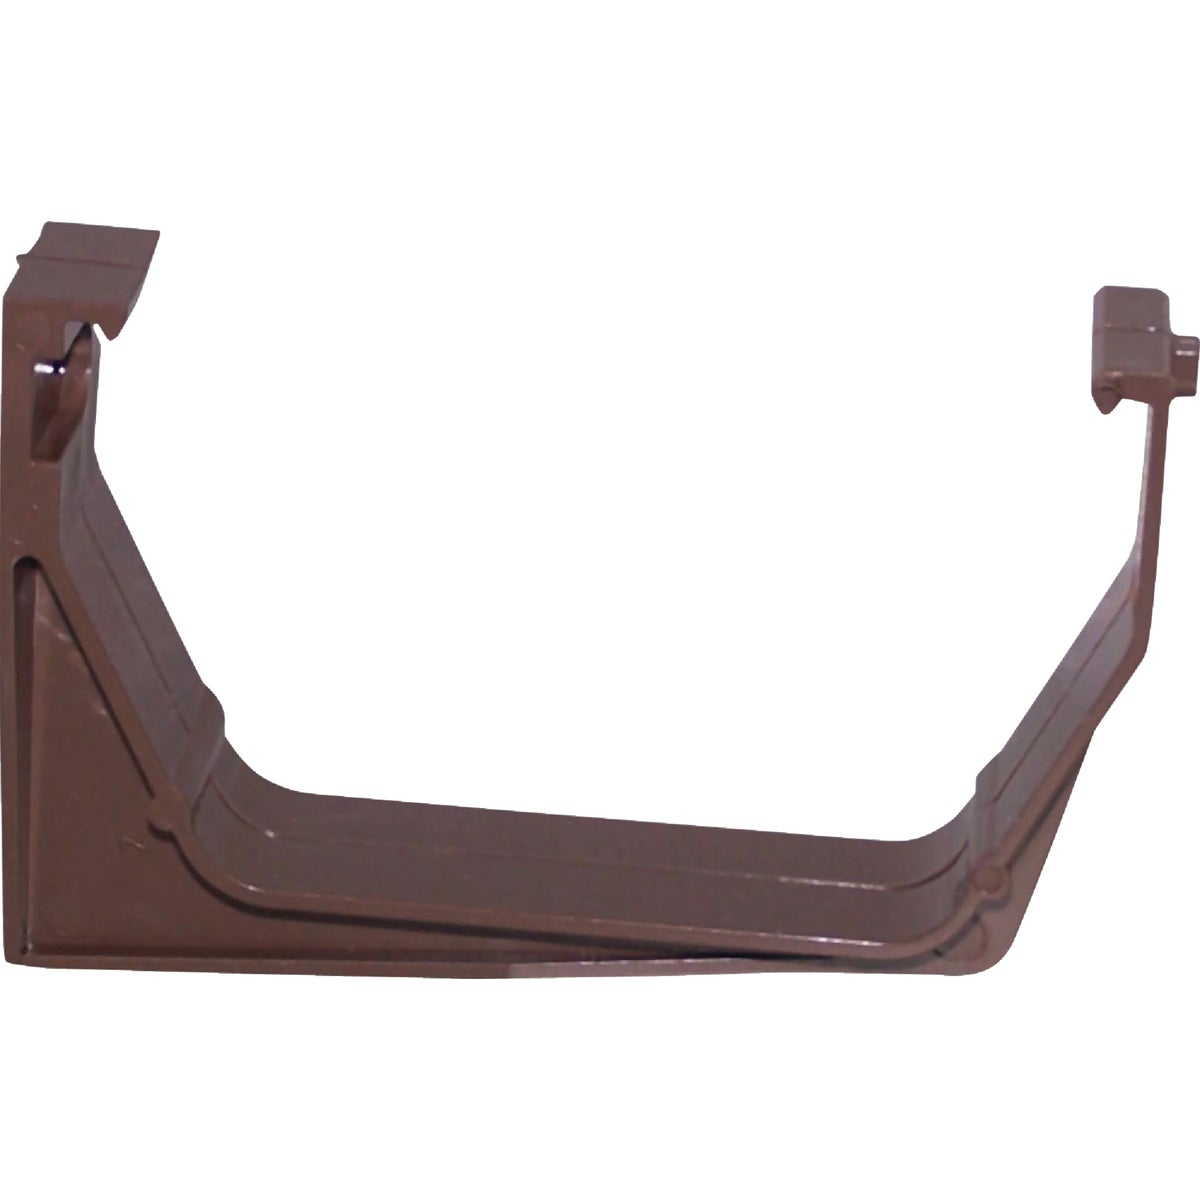 BRN HEAVY GUTTER BRACKET - RB106H by Genova Products